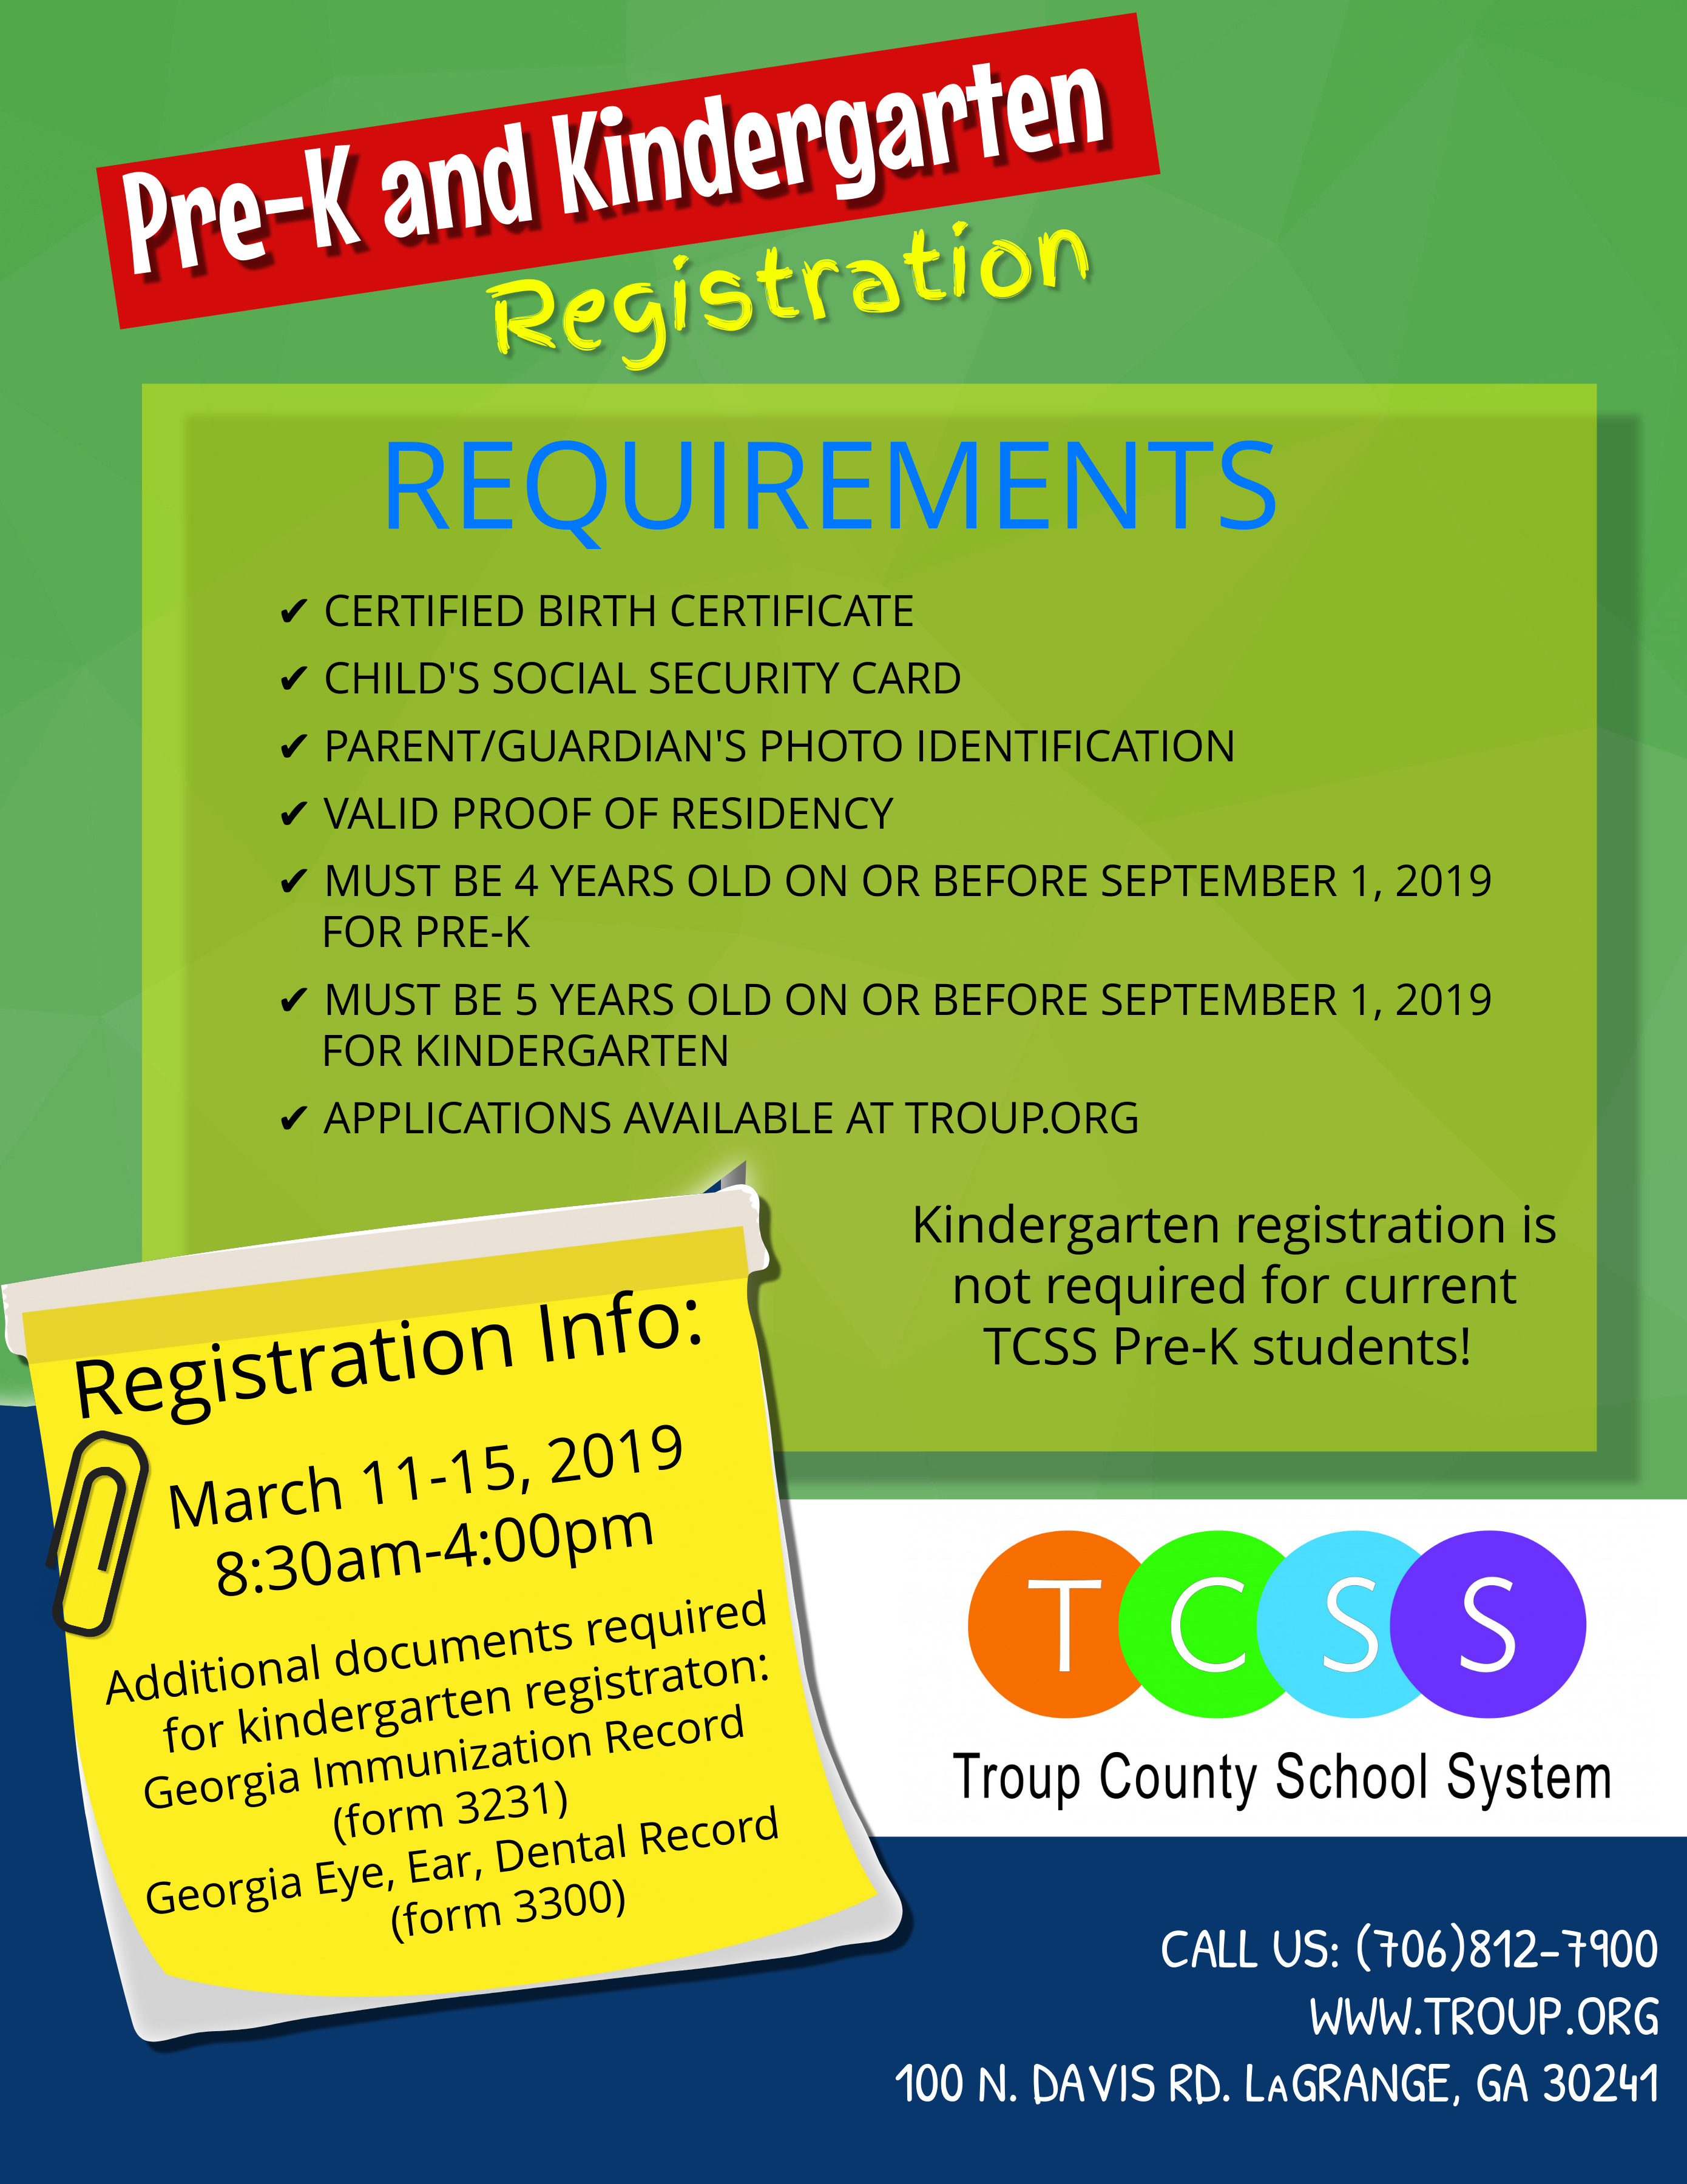 Pre-K and Kindergarten Registration Required Information